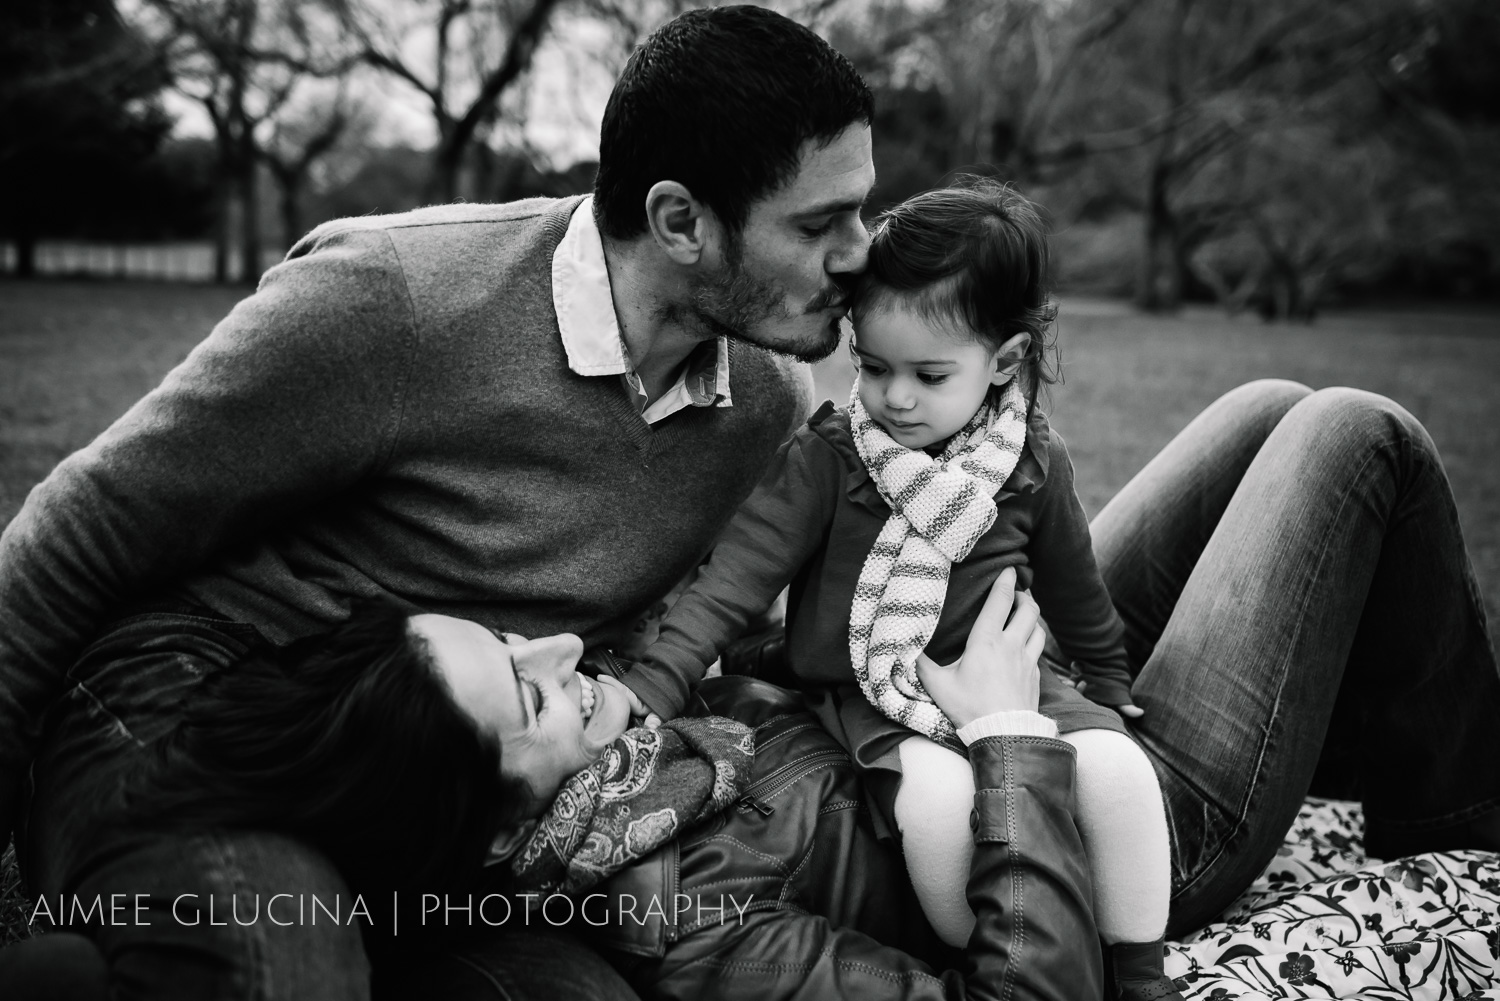 Lifestyle images of Fathers by Aimee Glucina Photography-20.jpg